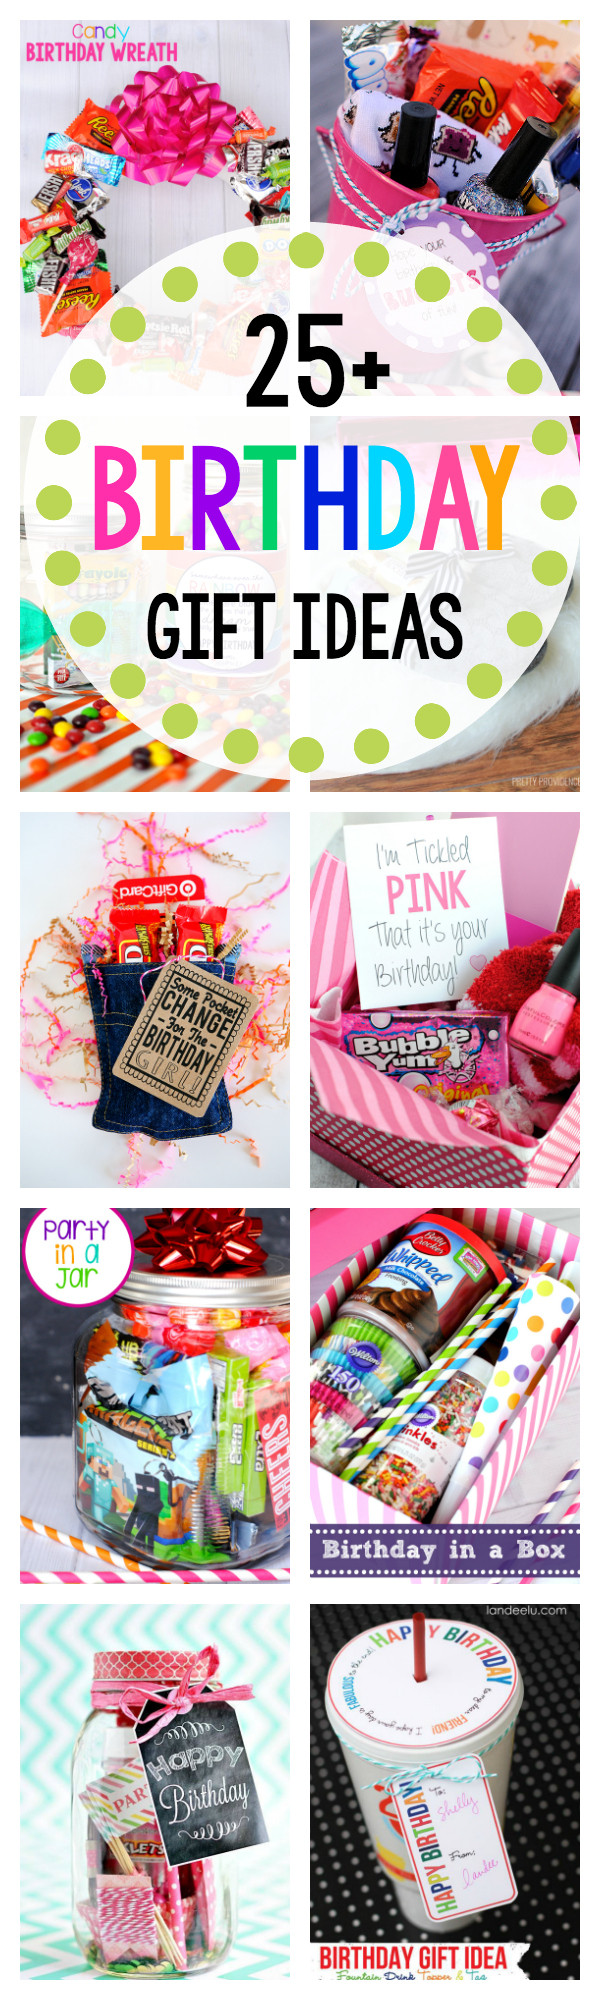 Best ideas about Fun Gift Ideas For Friend . Save or Pin Fun Birthday Gift Ideas for Friends Crazy Little Projects Now.